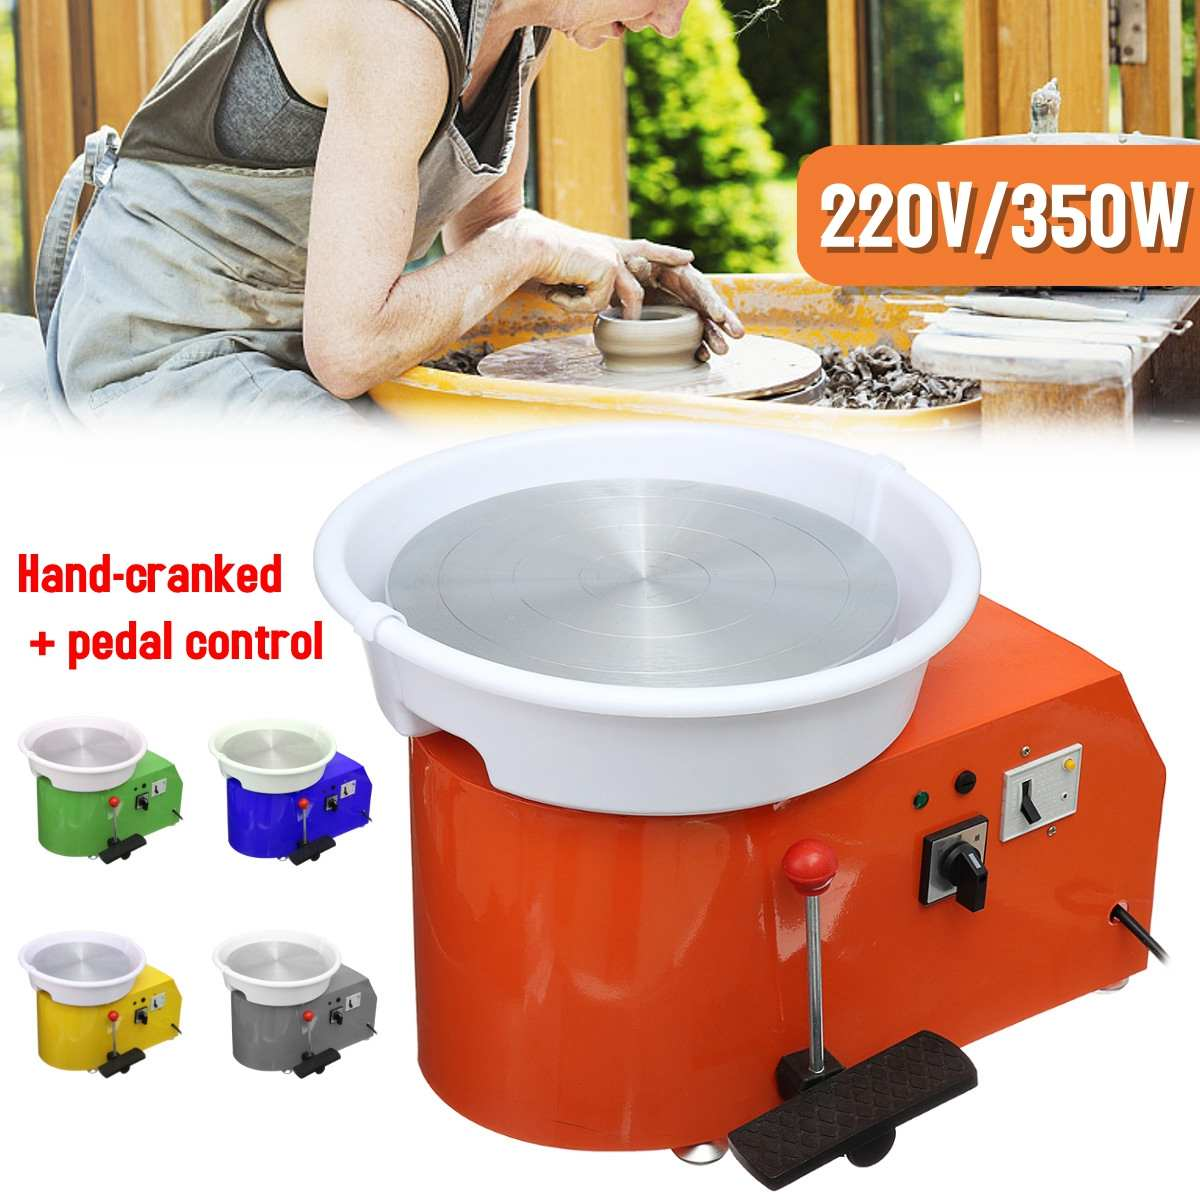 Pottery Wheel Machine 32cm 220V 350W Hand cranked and pedal control Ceramic Work Clay Art With Mobile Smooth Low Noise